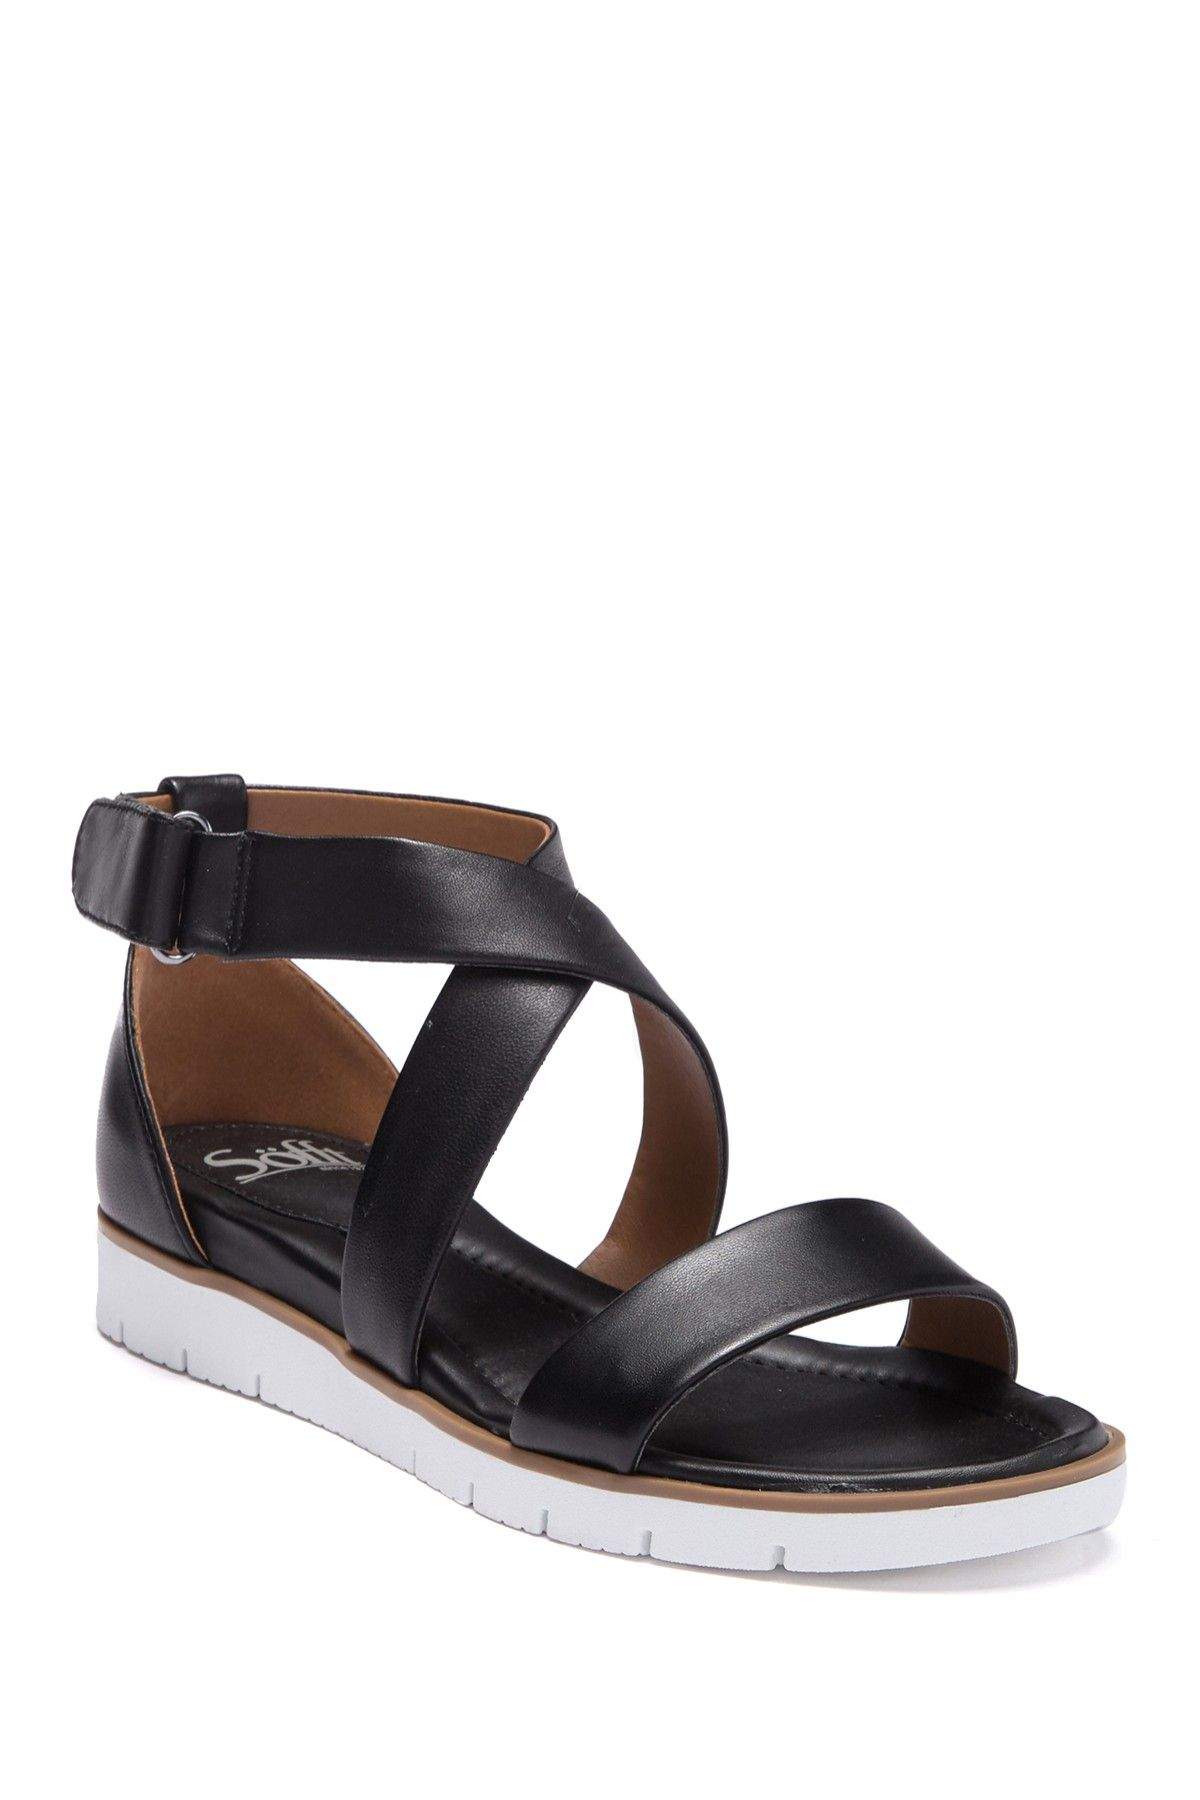 ba1c3a9aa95 Sofft | Reston Smooth Sandal in 2019 | vacation clothes | Sandals ...